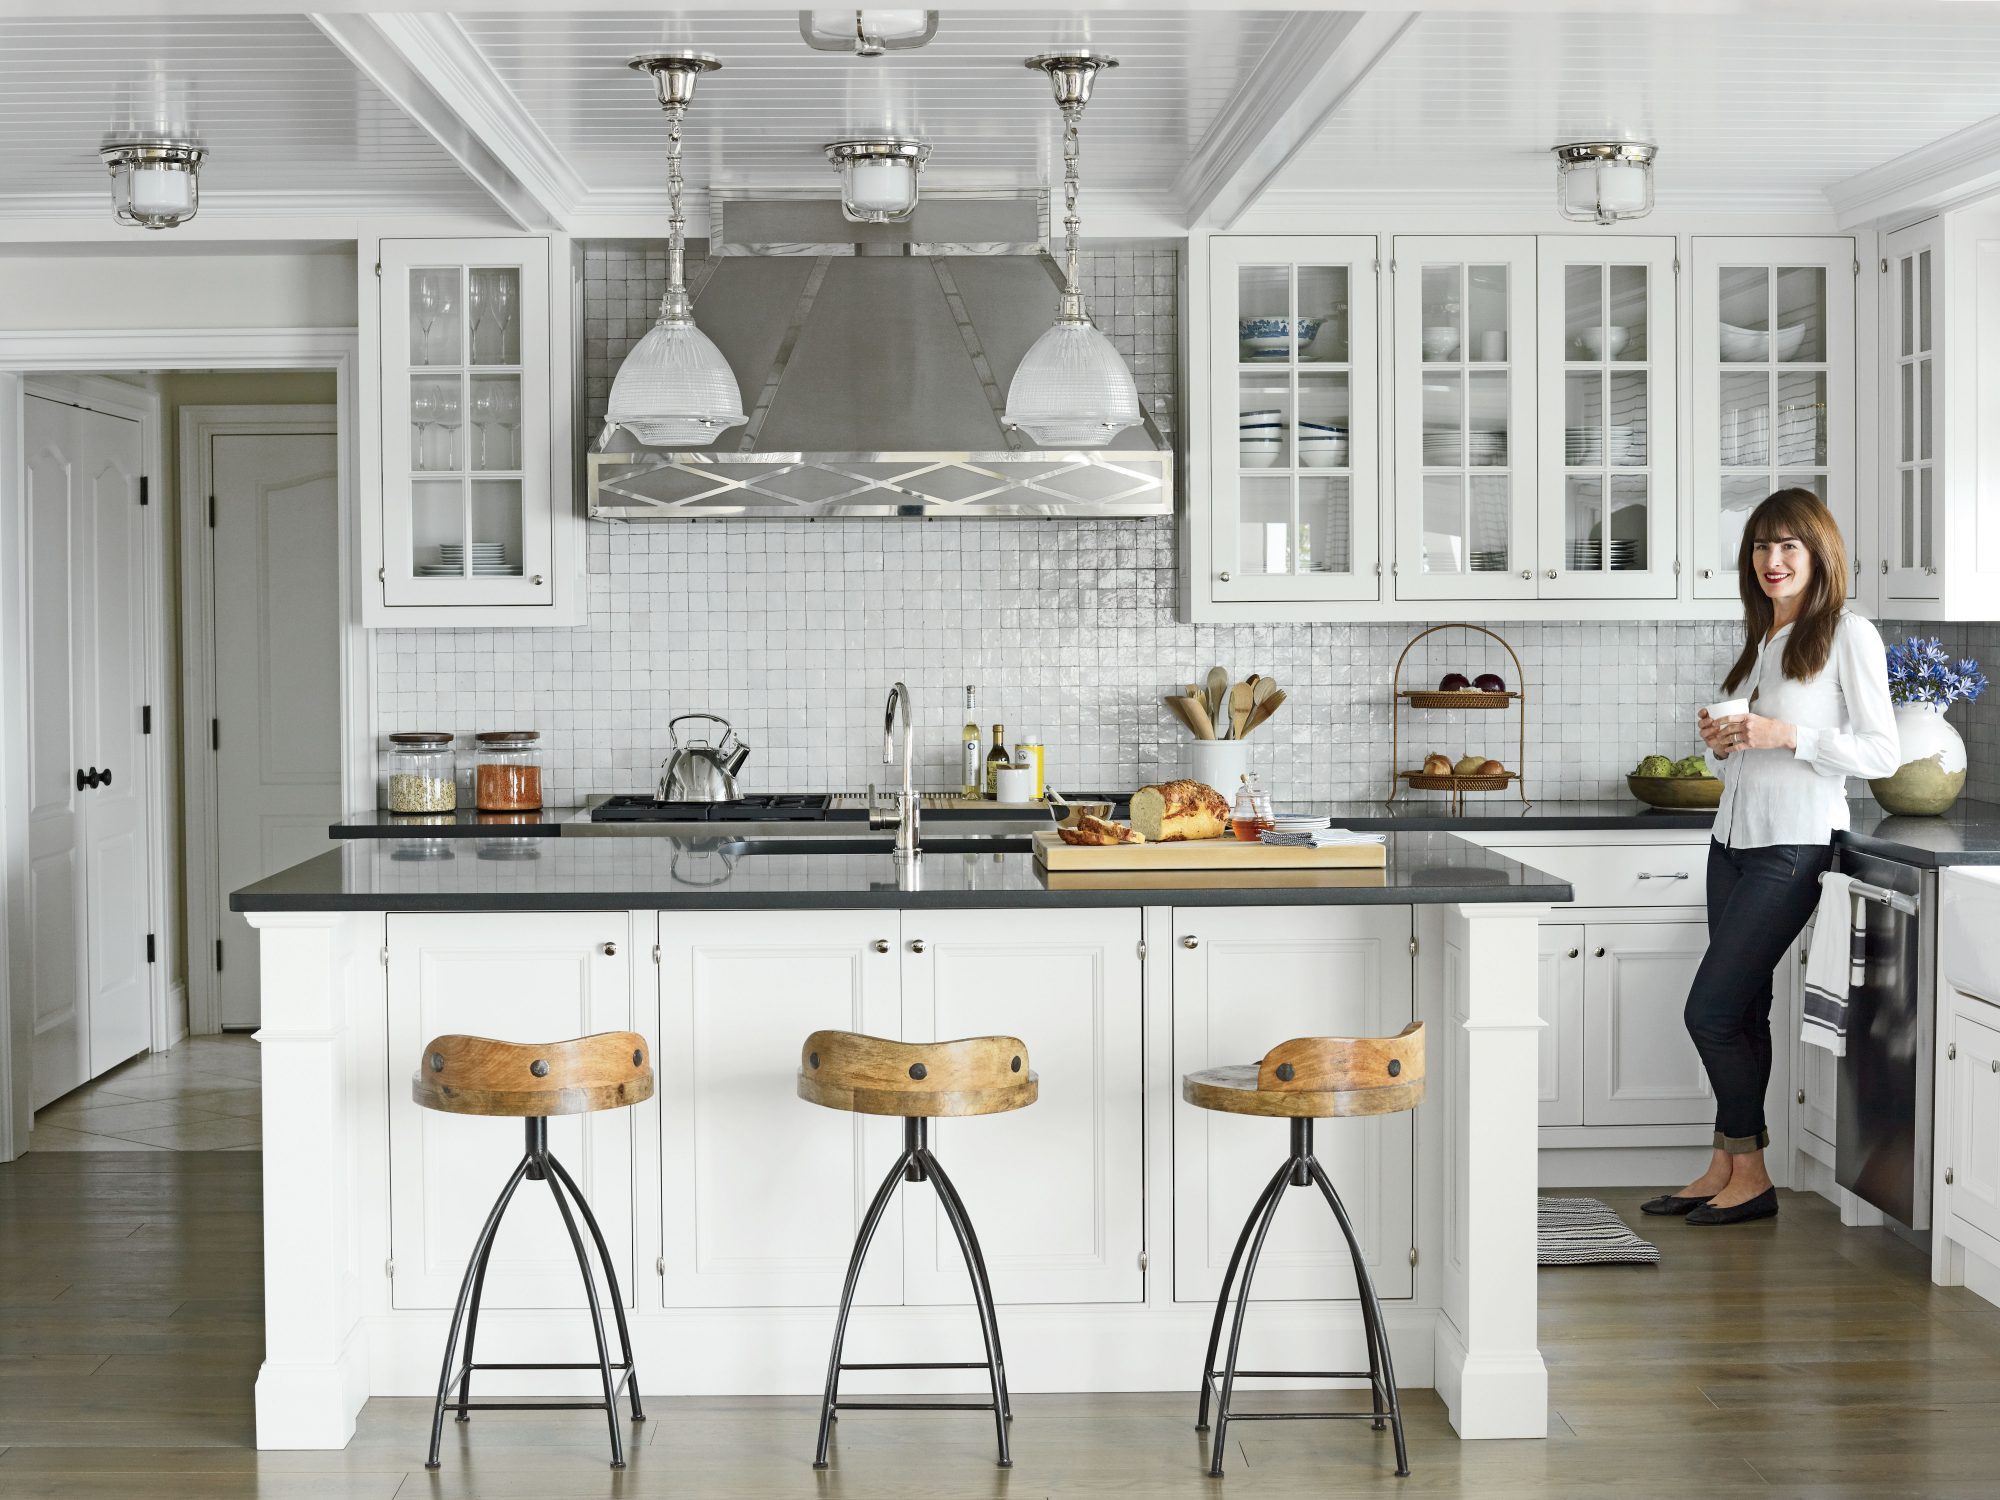 With its new, Shaker-style cabinetry on olive knuckle hinges, open shelving displaying pretty blue-and-white dishware, dazzling glazed terra-cotta backsplash, custom hardware made from a mold of an antique pull, and fanciful range hood, the kitchen is thi